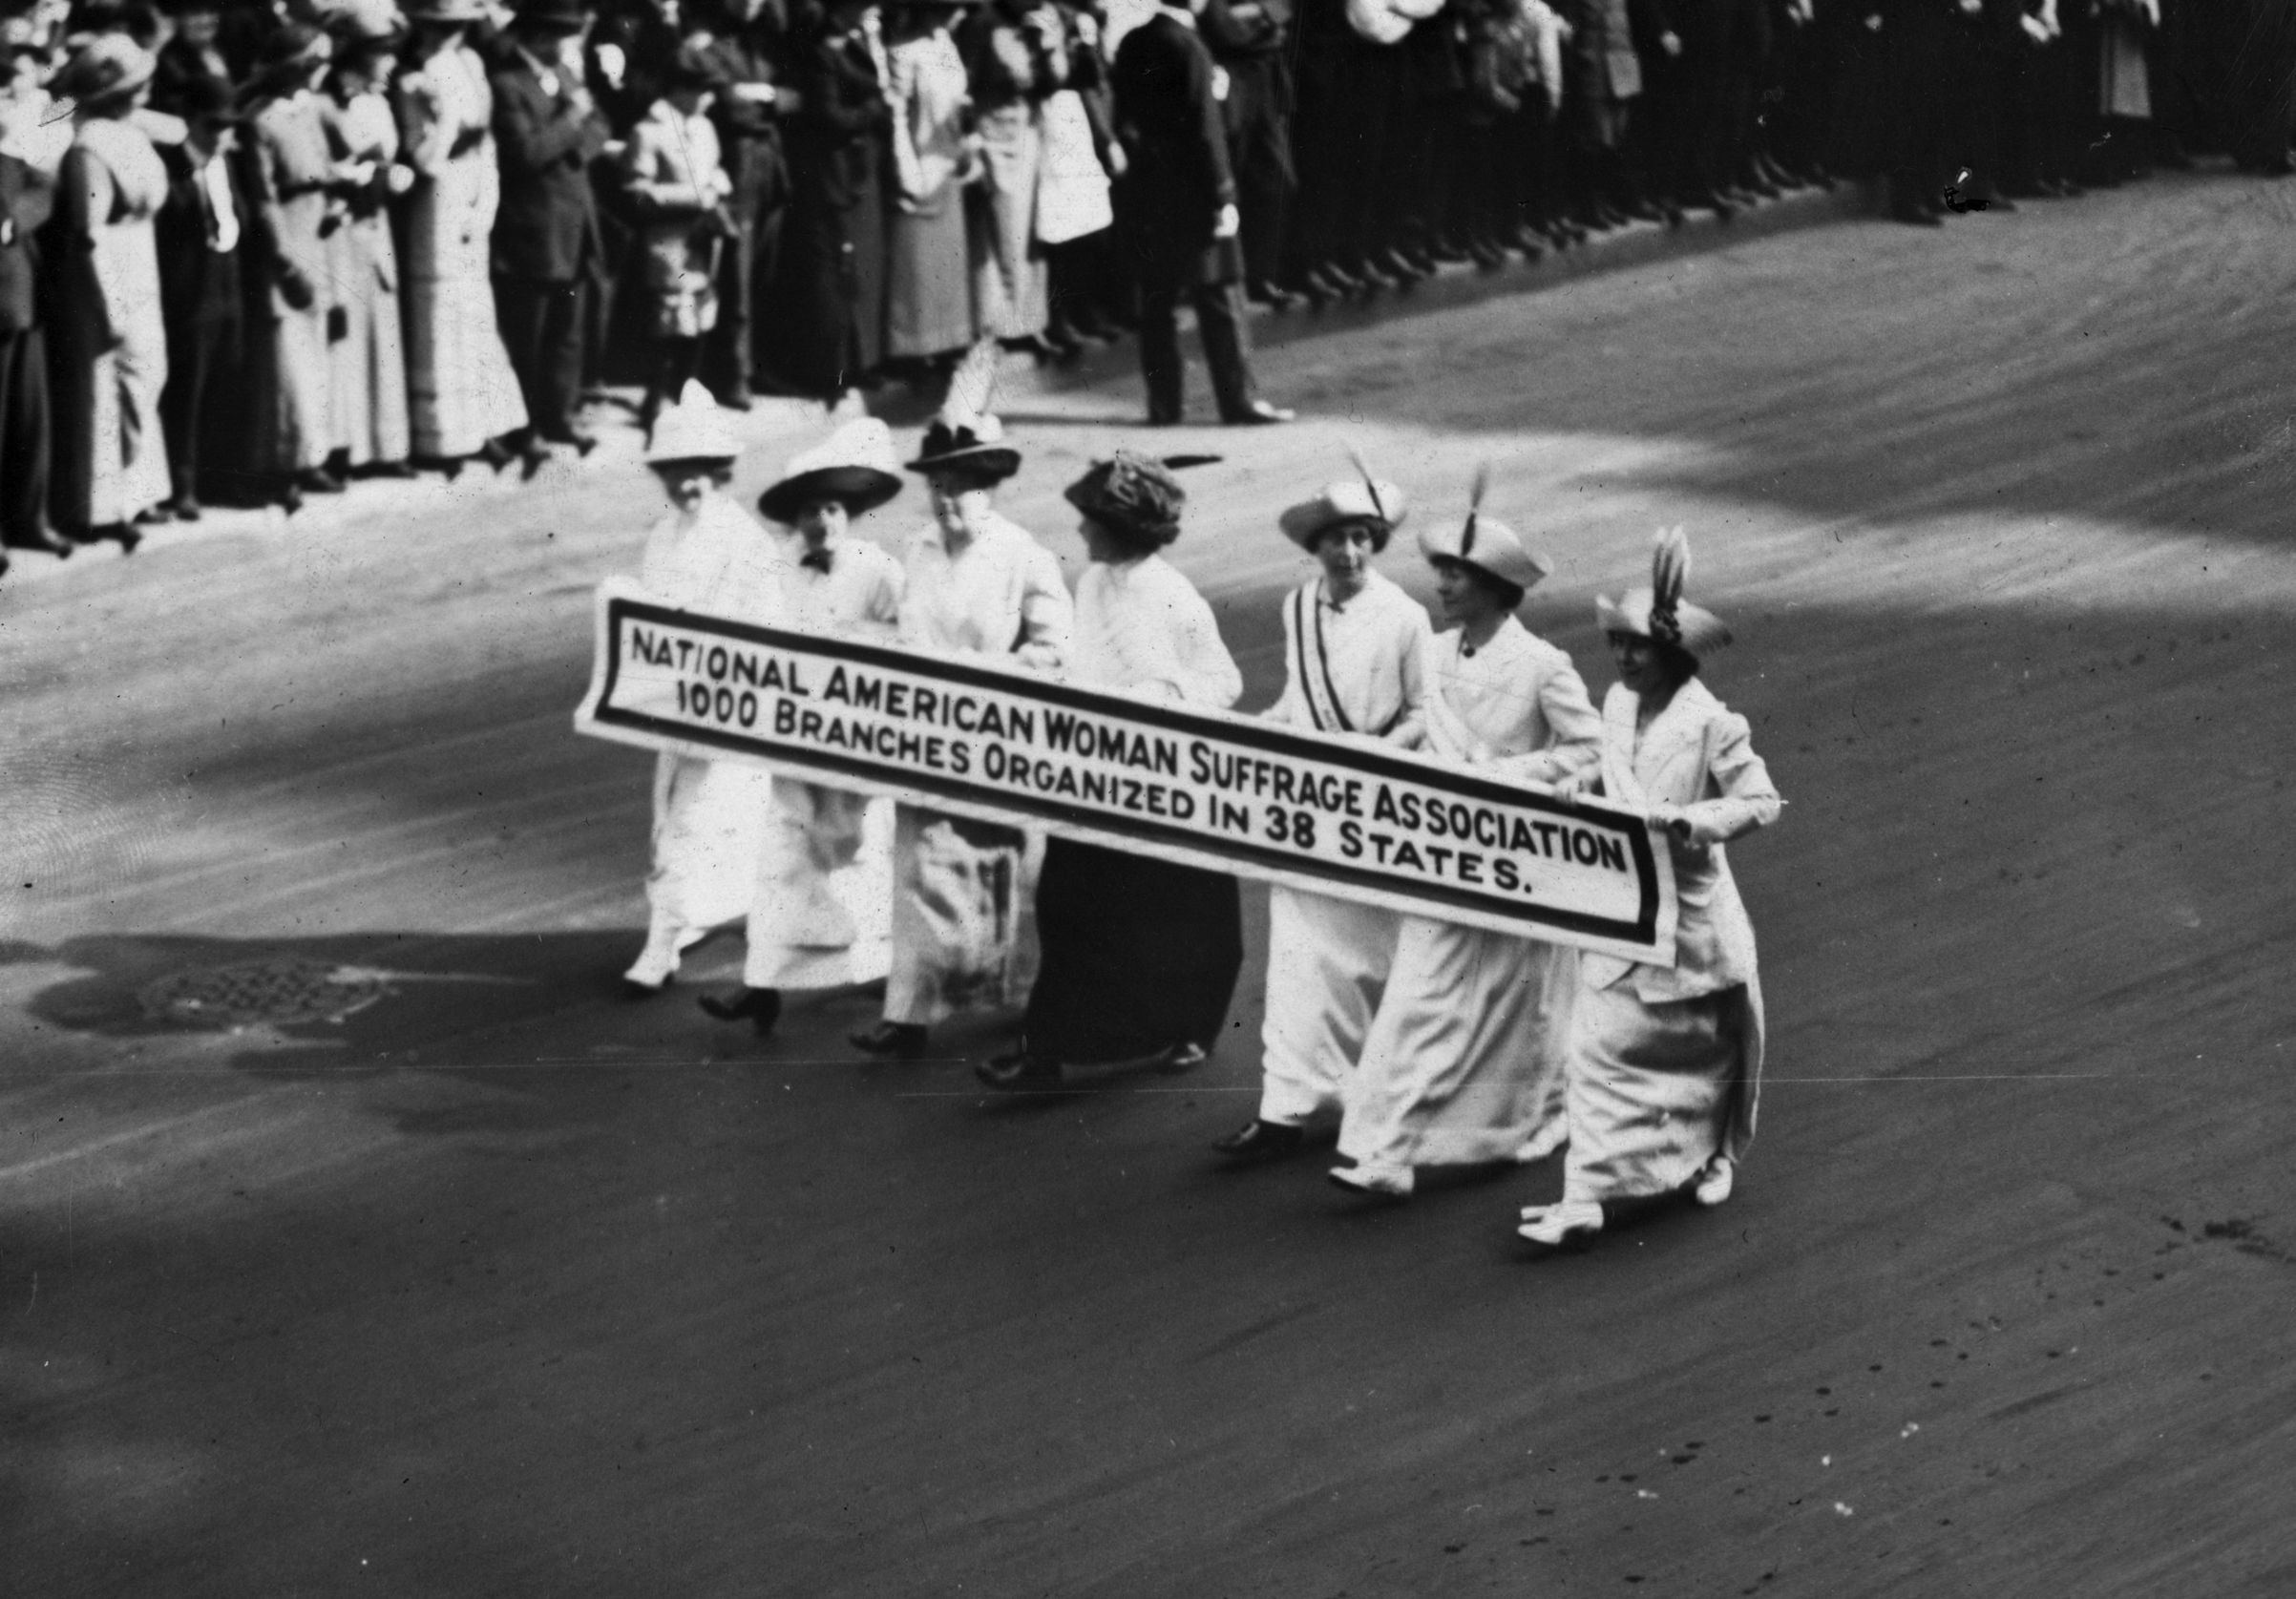 Members of the National American Woman Suffrage Association marching with a banner at the New York Suffragette Parade on May 3, 1913